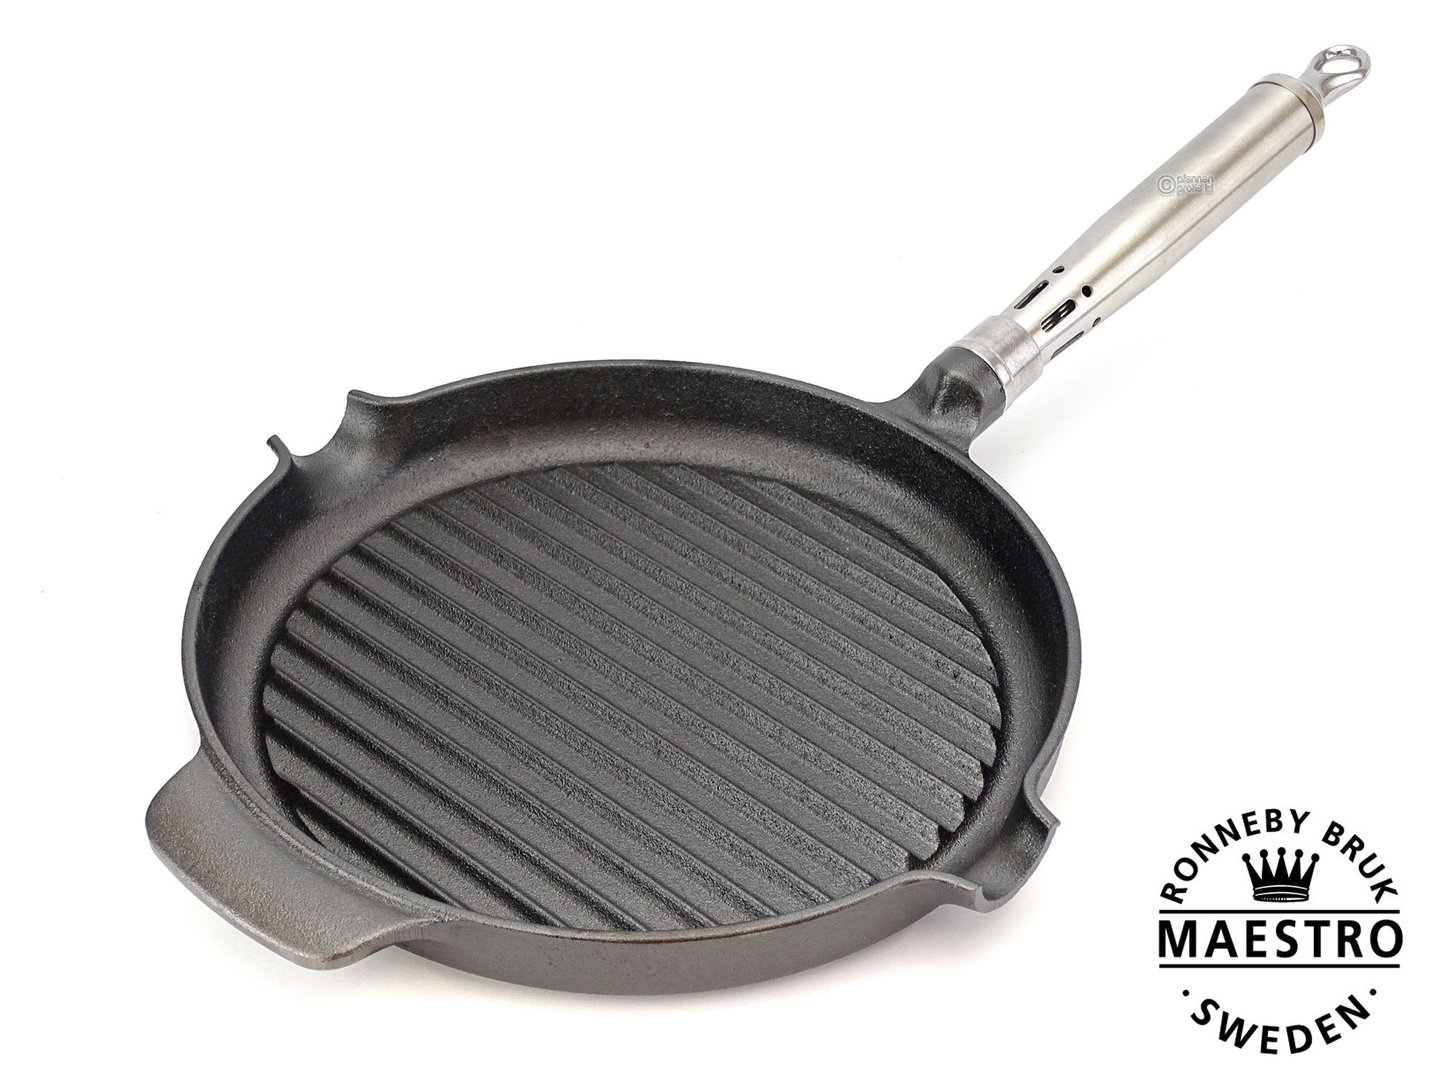 RONNEBY BRUK cast iron grill pan MAESTRO 24 cm stainless steel handle, pre-seasoned